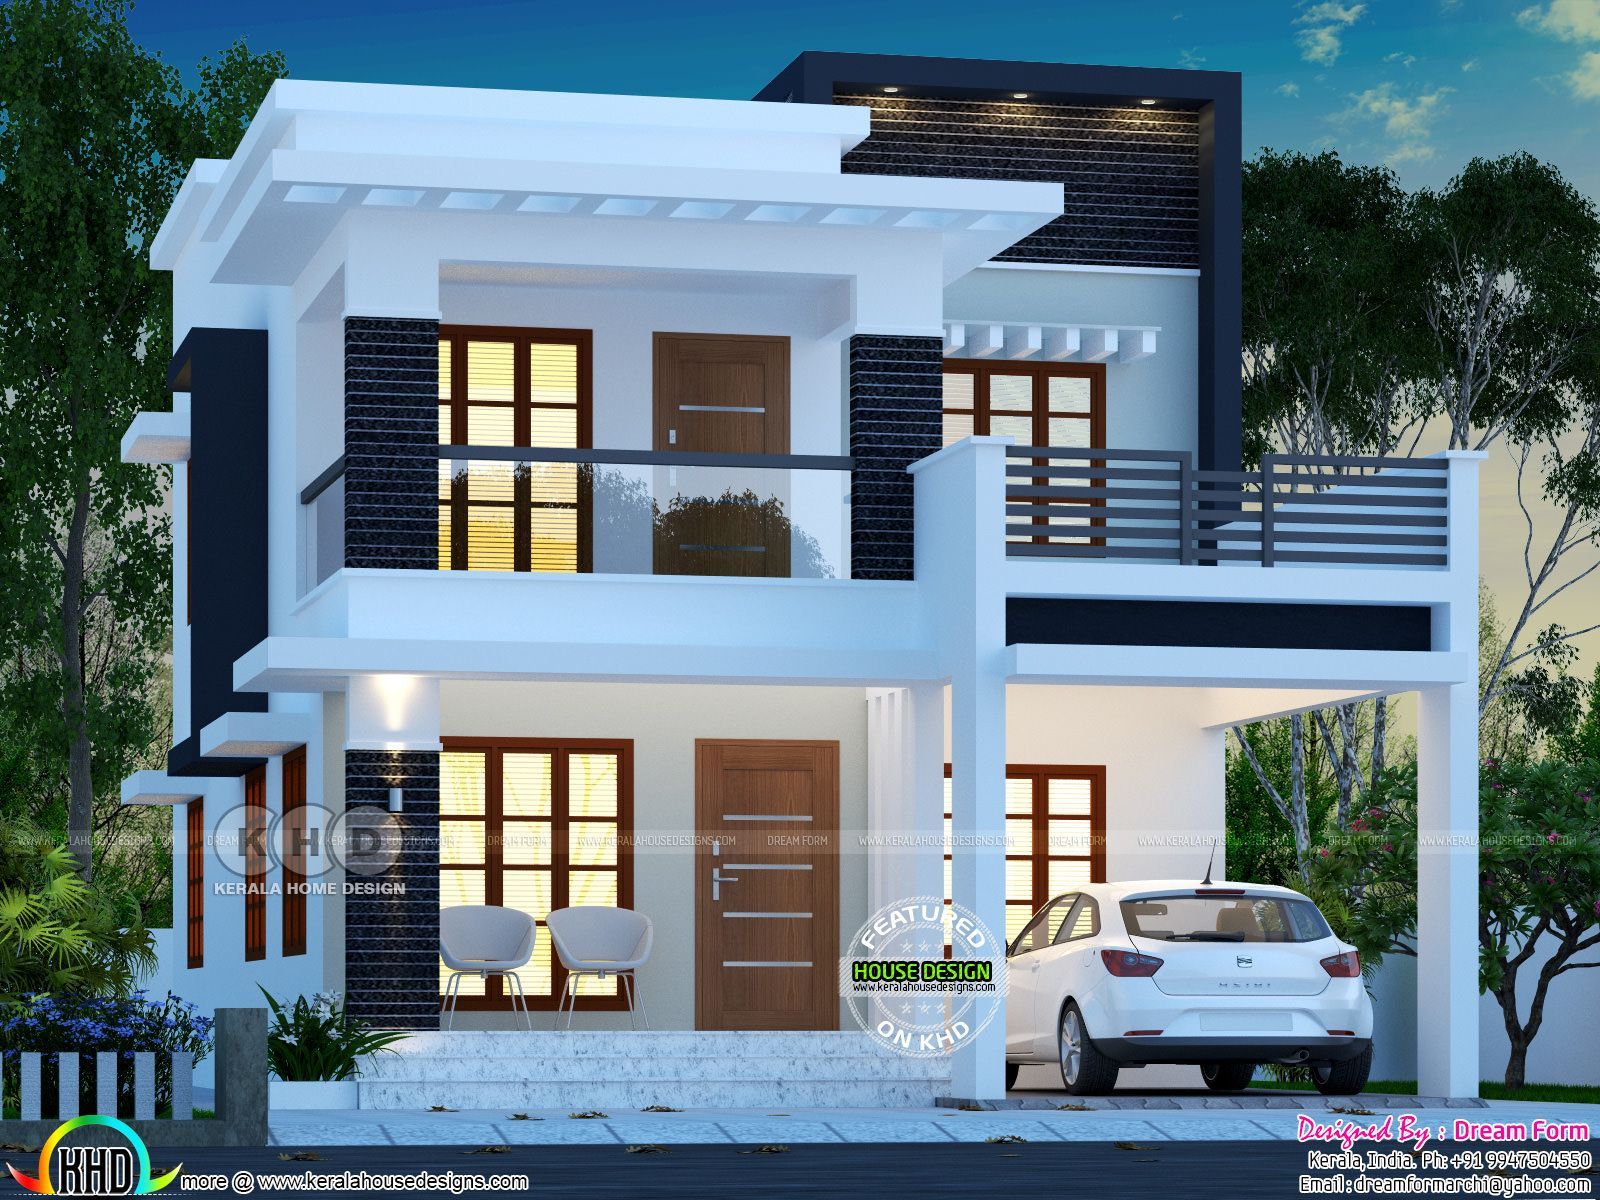 New House Model 1800 Sq Ft India Google Search 2 Storey House Design Kerala House Design Duplex House Design